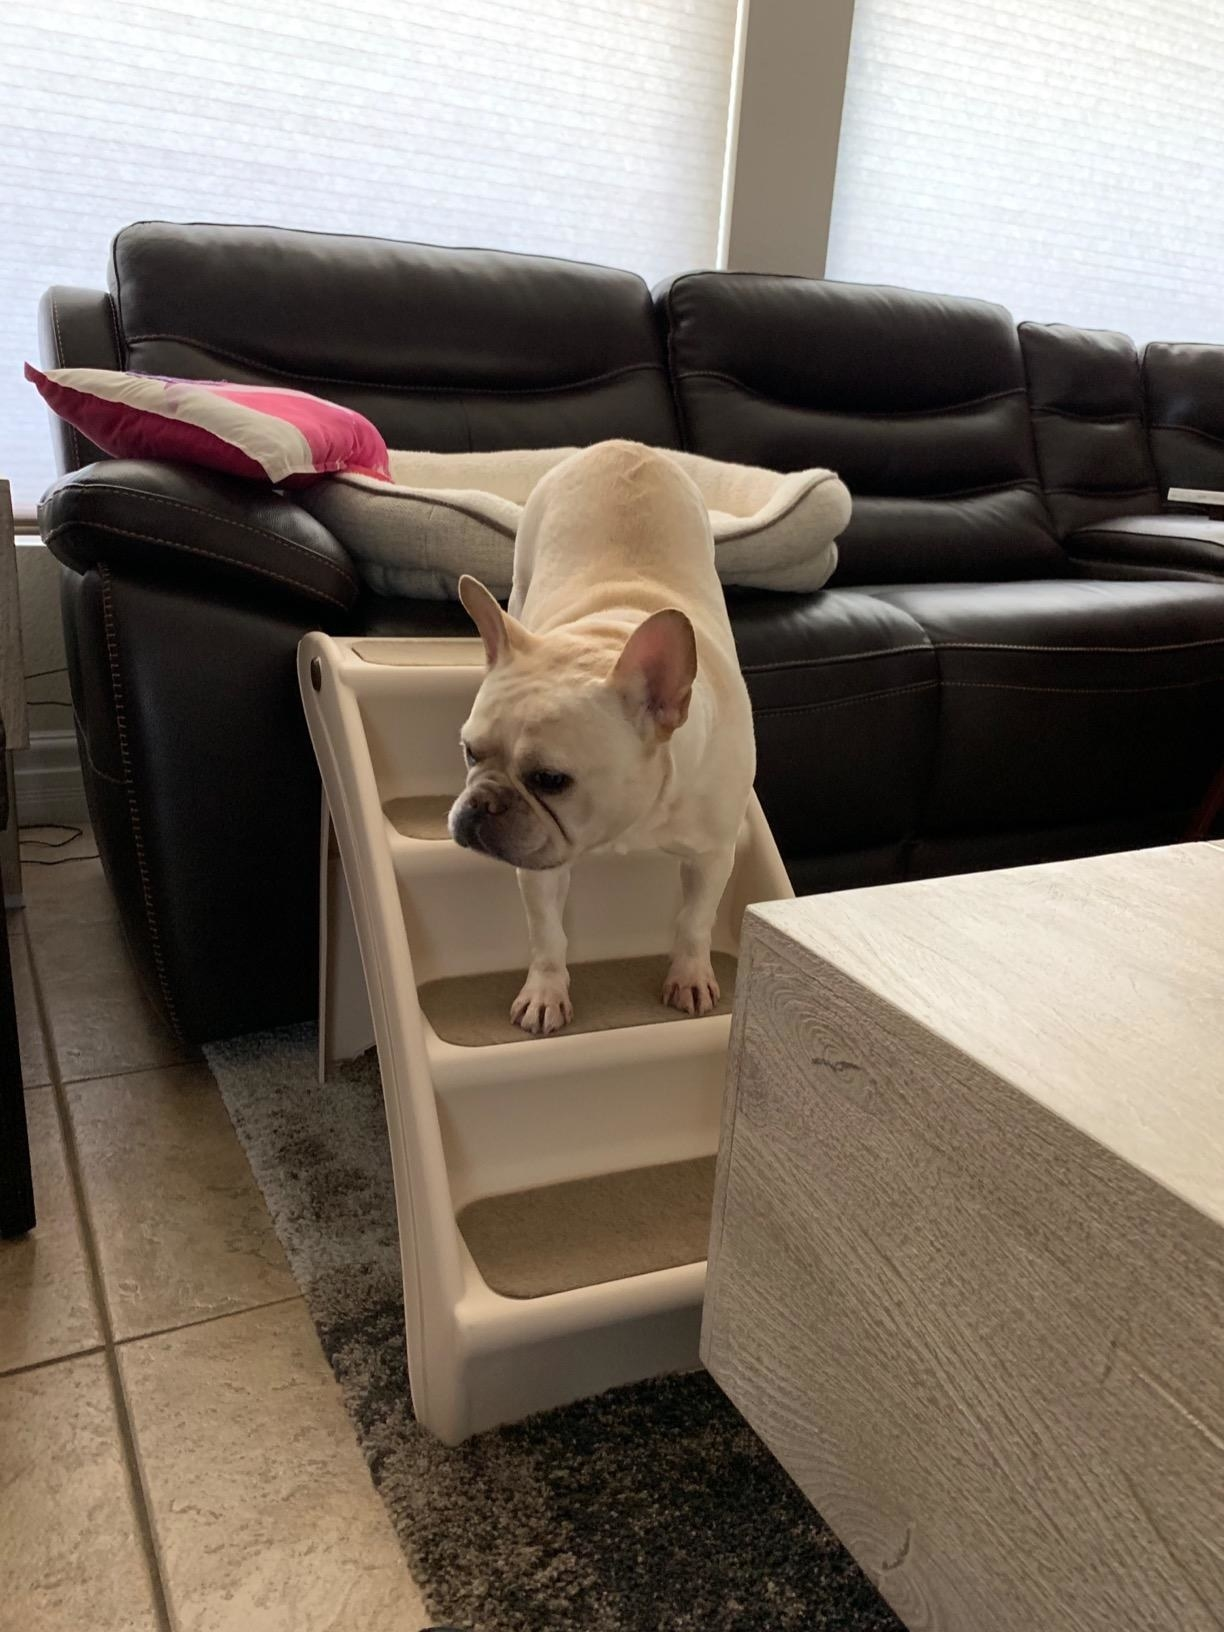 A dog climbs down from the couch using the steps